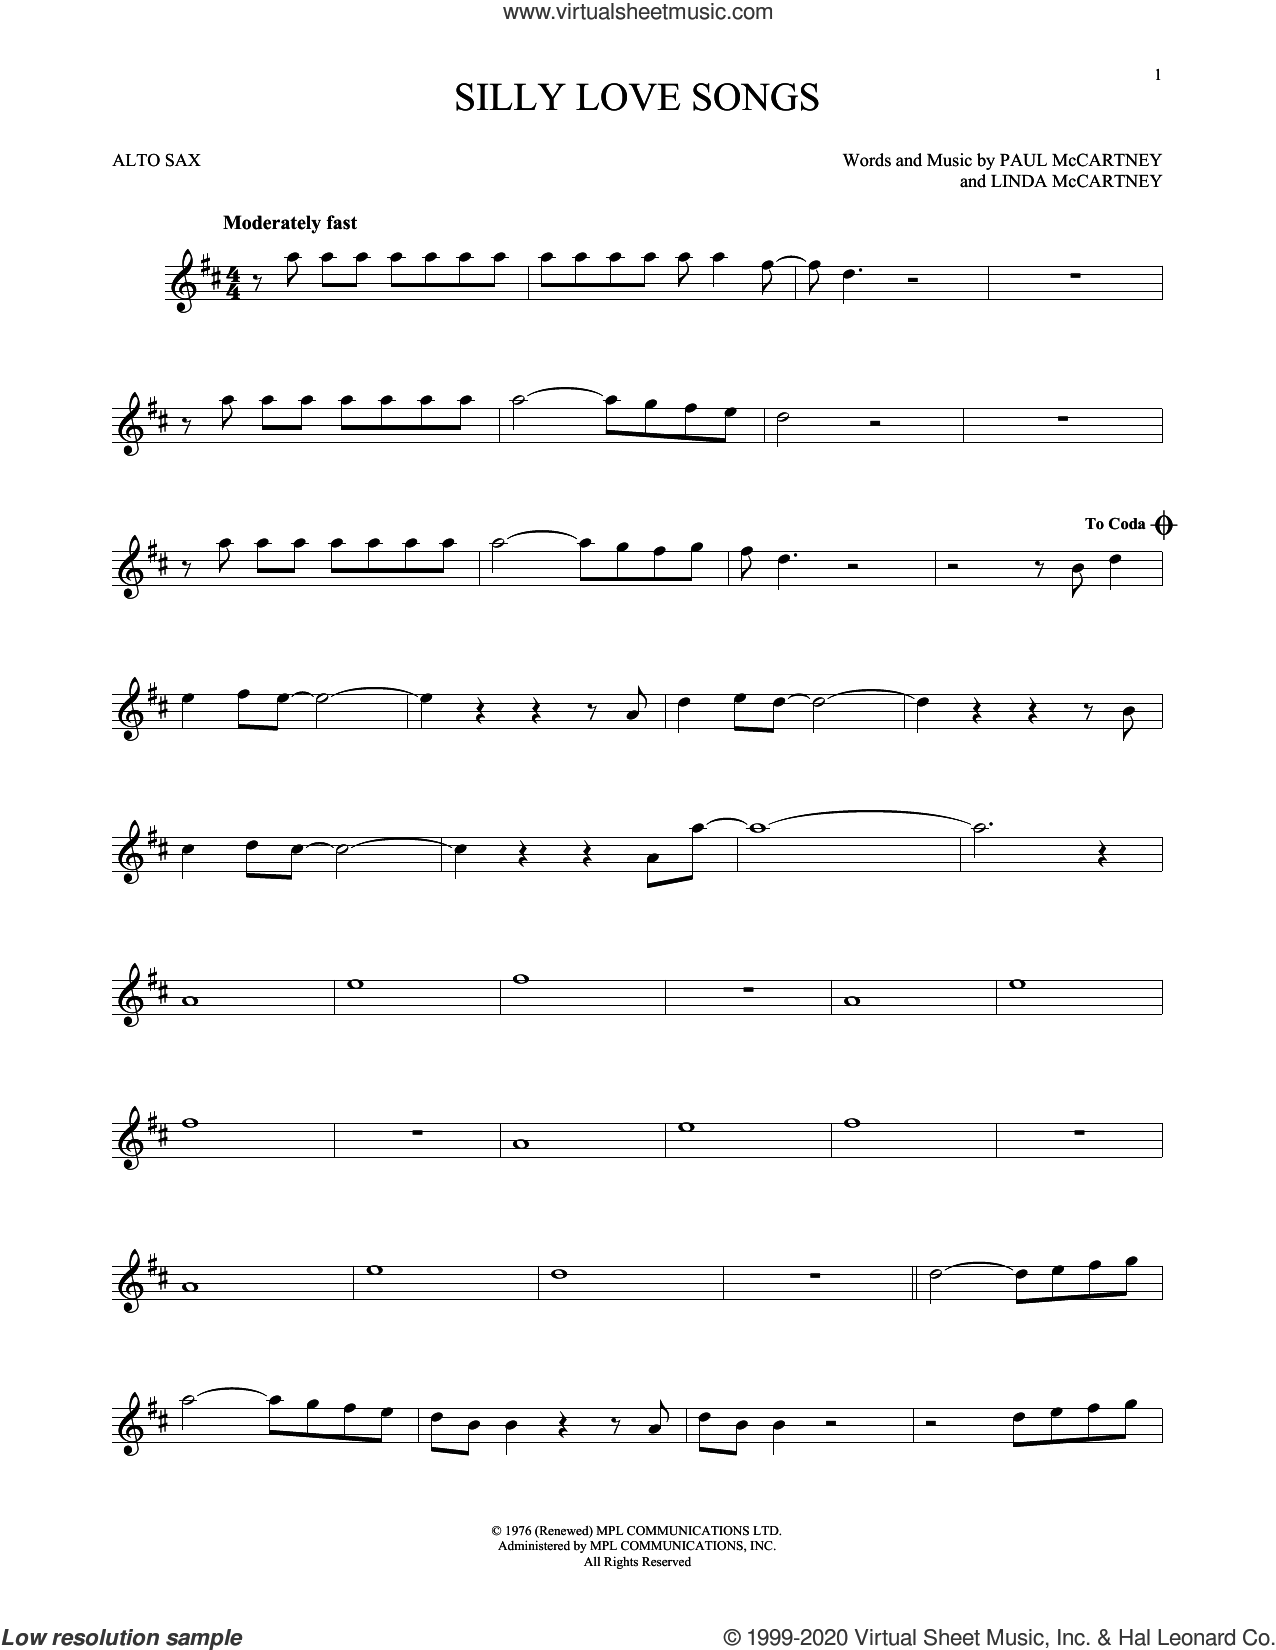 Silly Love Songs sheet music for alto saxophone solo by Wings, Linda McCartney and Paul McCartney, intermediate skill level